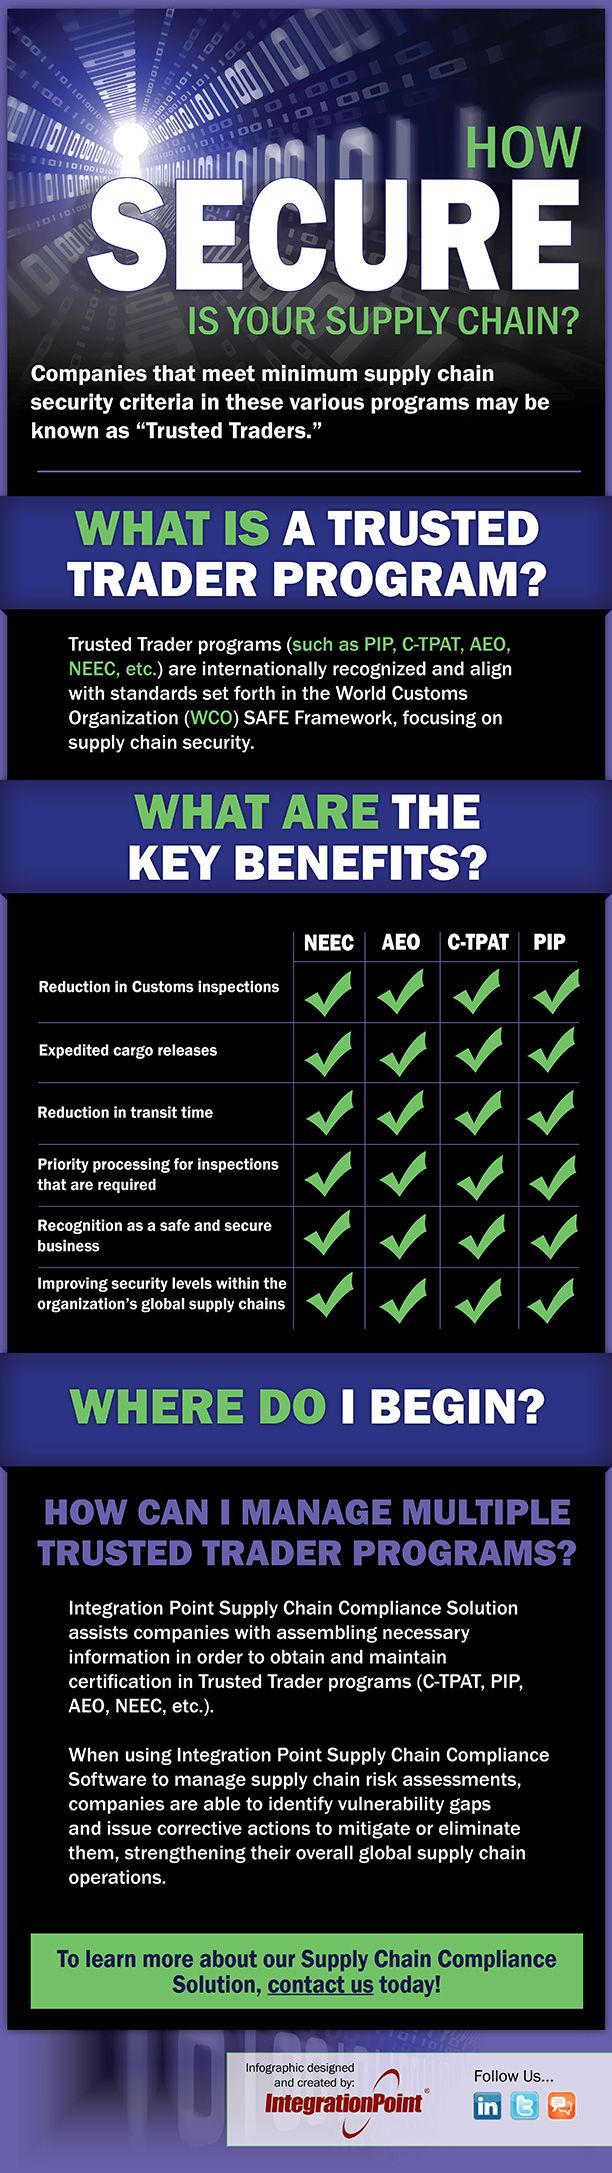 Infographic test on How Secure Is Your Supply Chain?